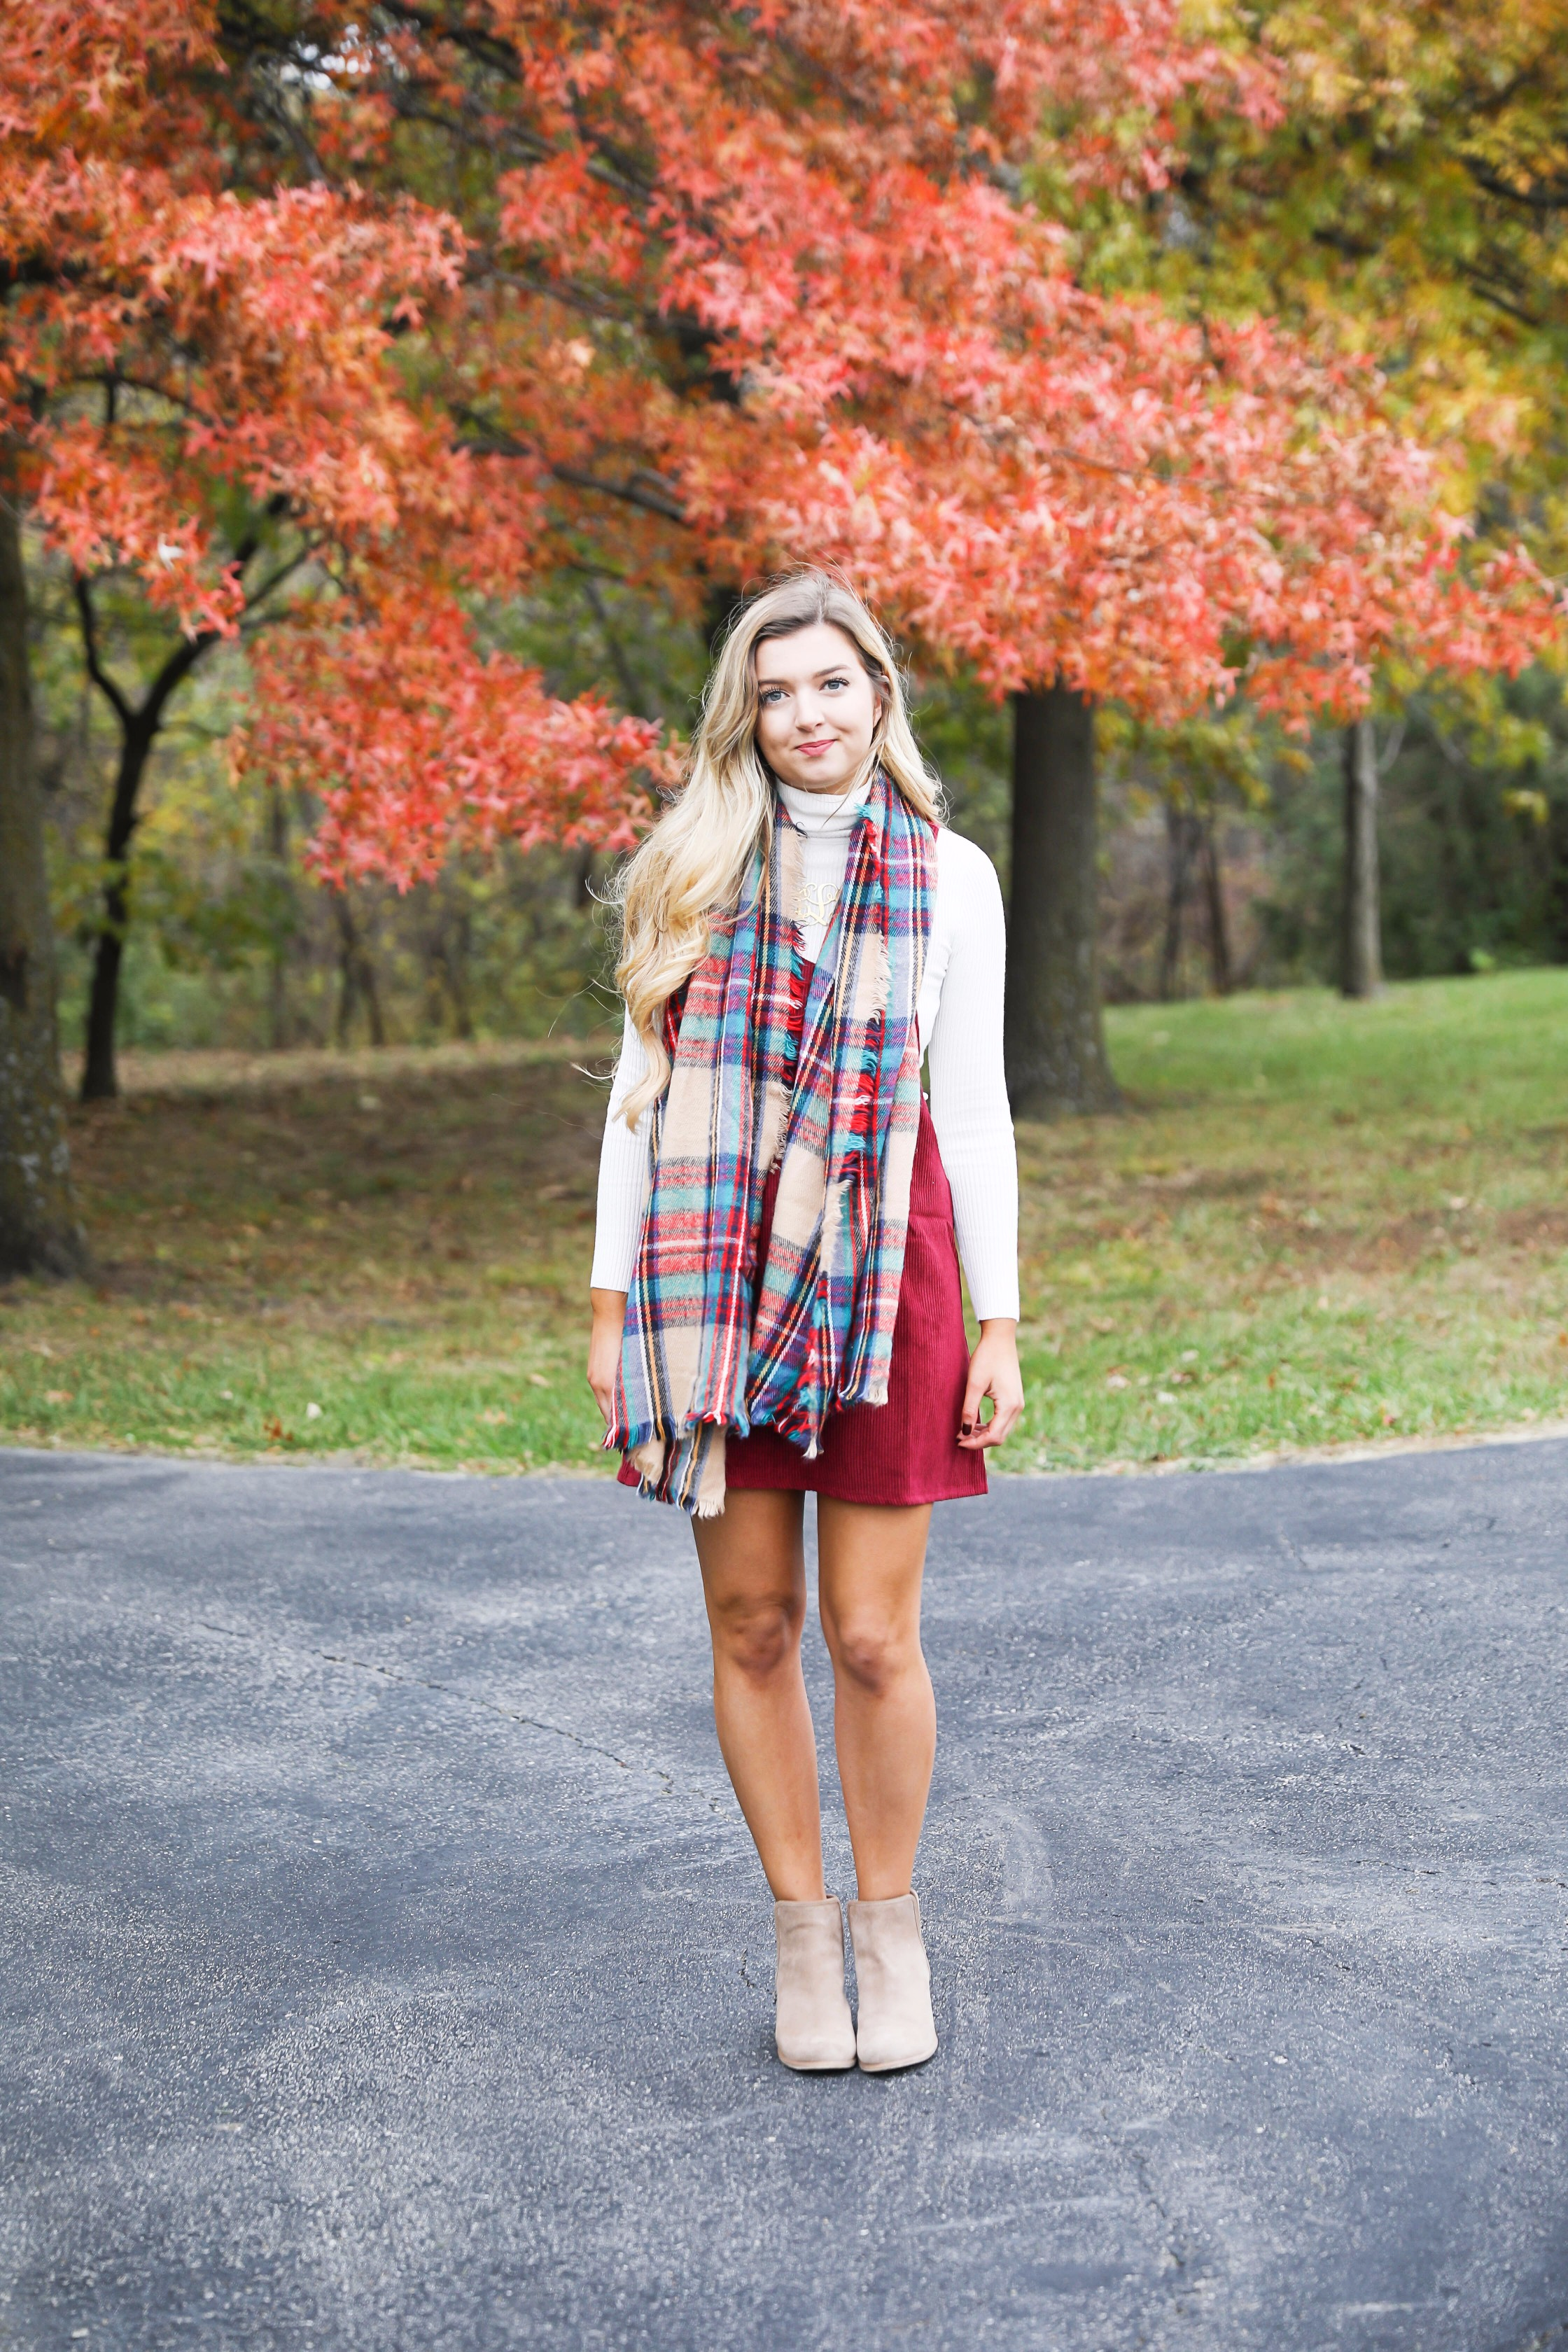 Red corduroy overall dress with white turtleneck and blanket scarf! The cutest fall outfit for a fall trees and foliage photoshoot! Get details on fashion blog daily dose of charm lauren lindmark